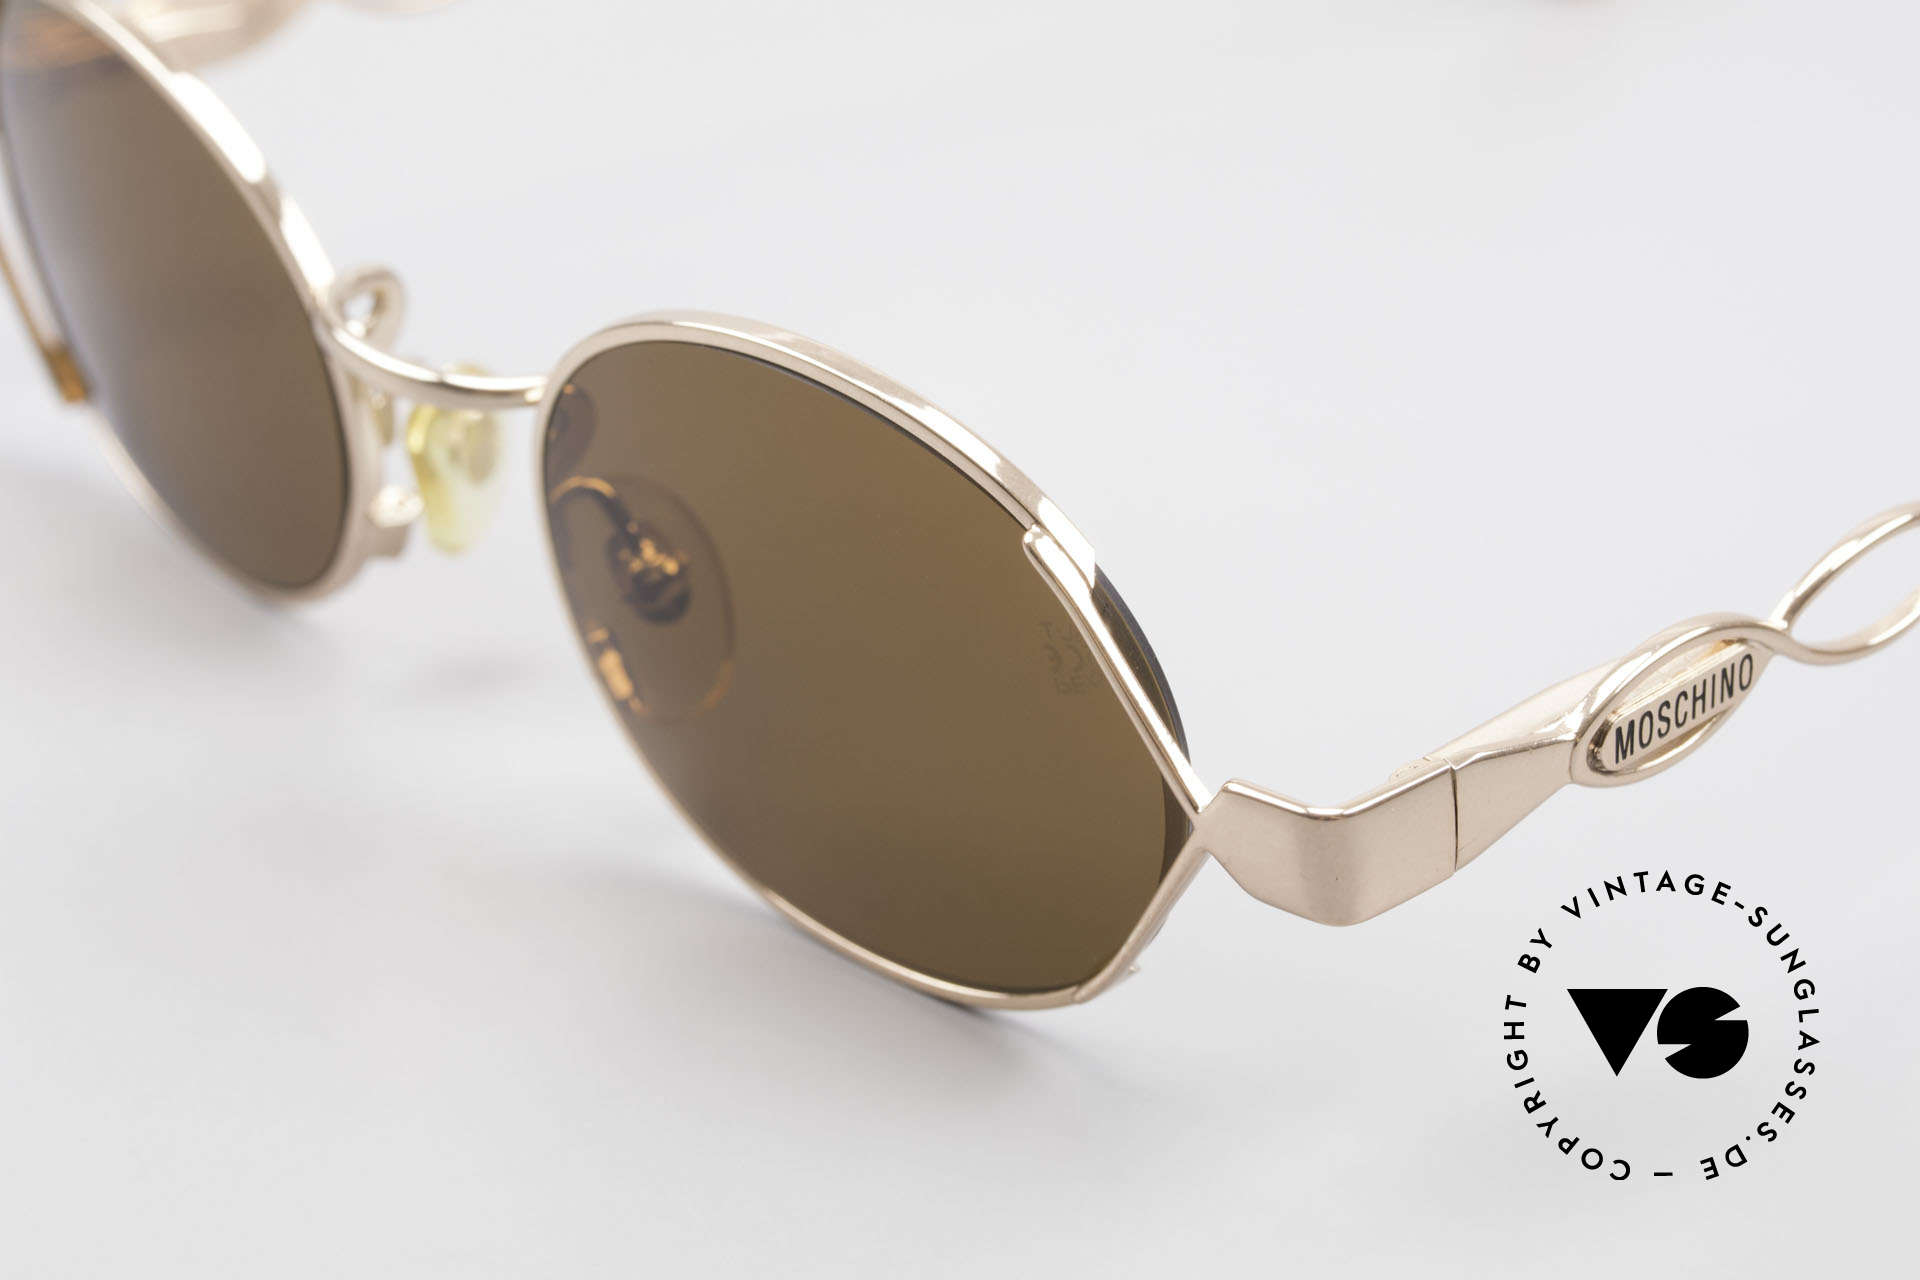 Moschino MM344 Ladies Designer Sunglasses 90s, thus, top-quality (spring hinges & copper alloying), Made for Women